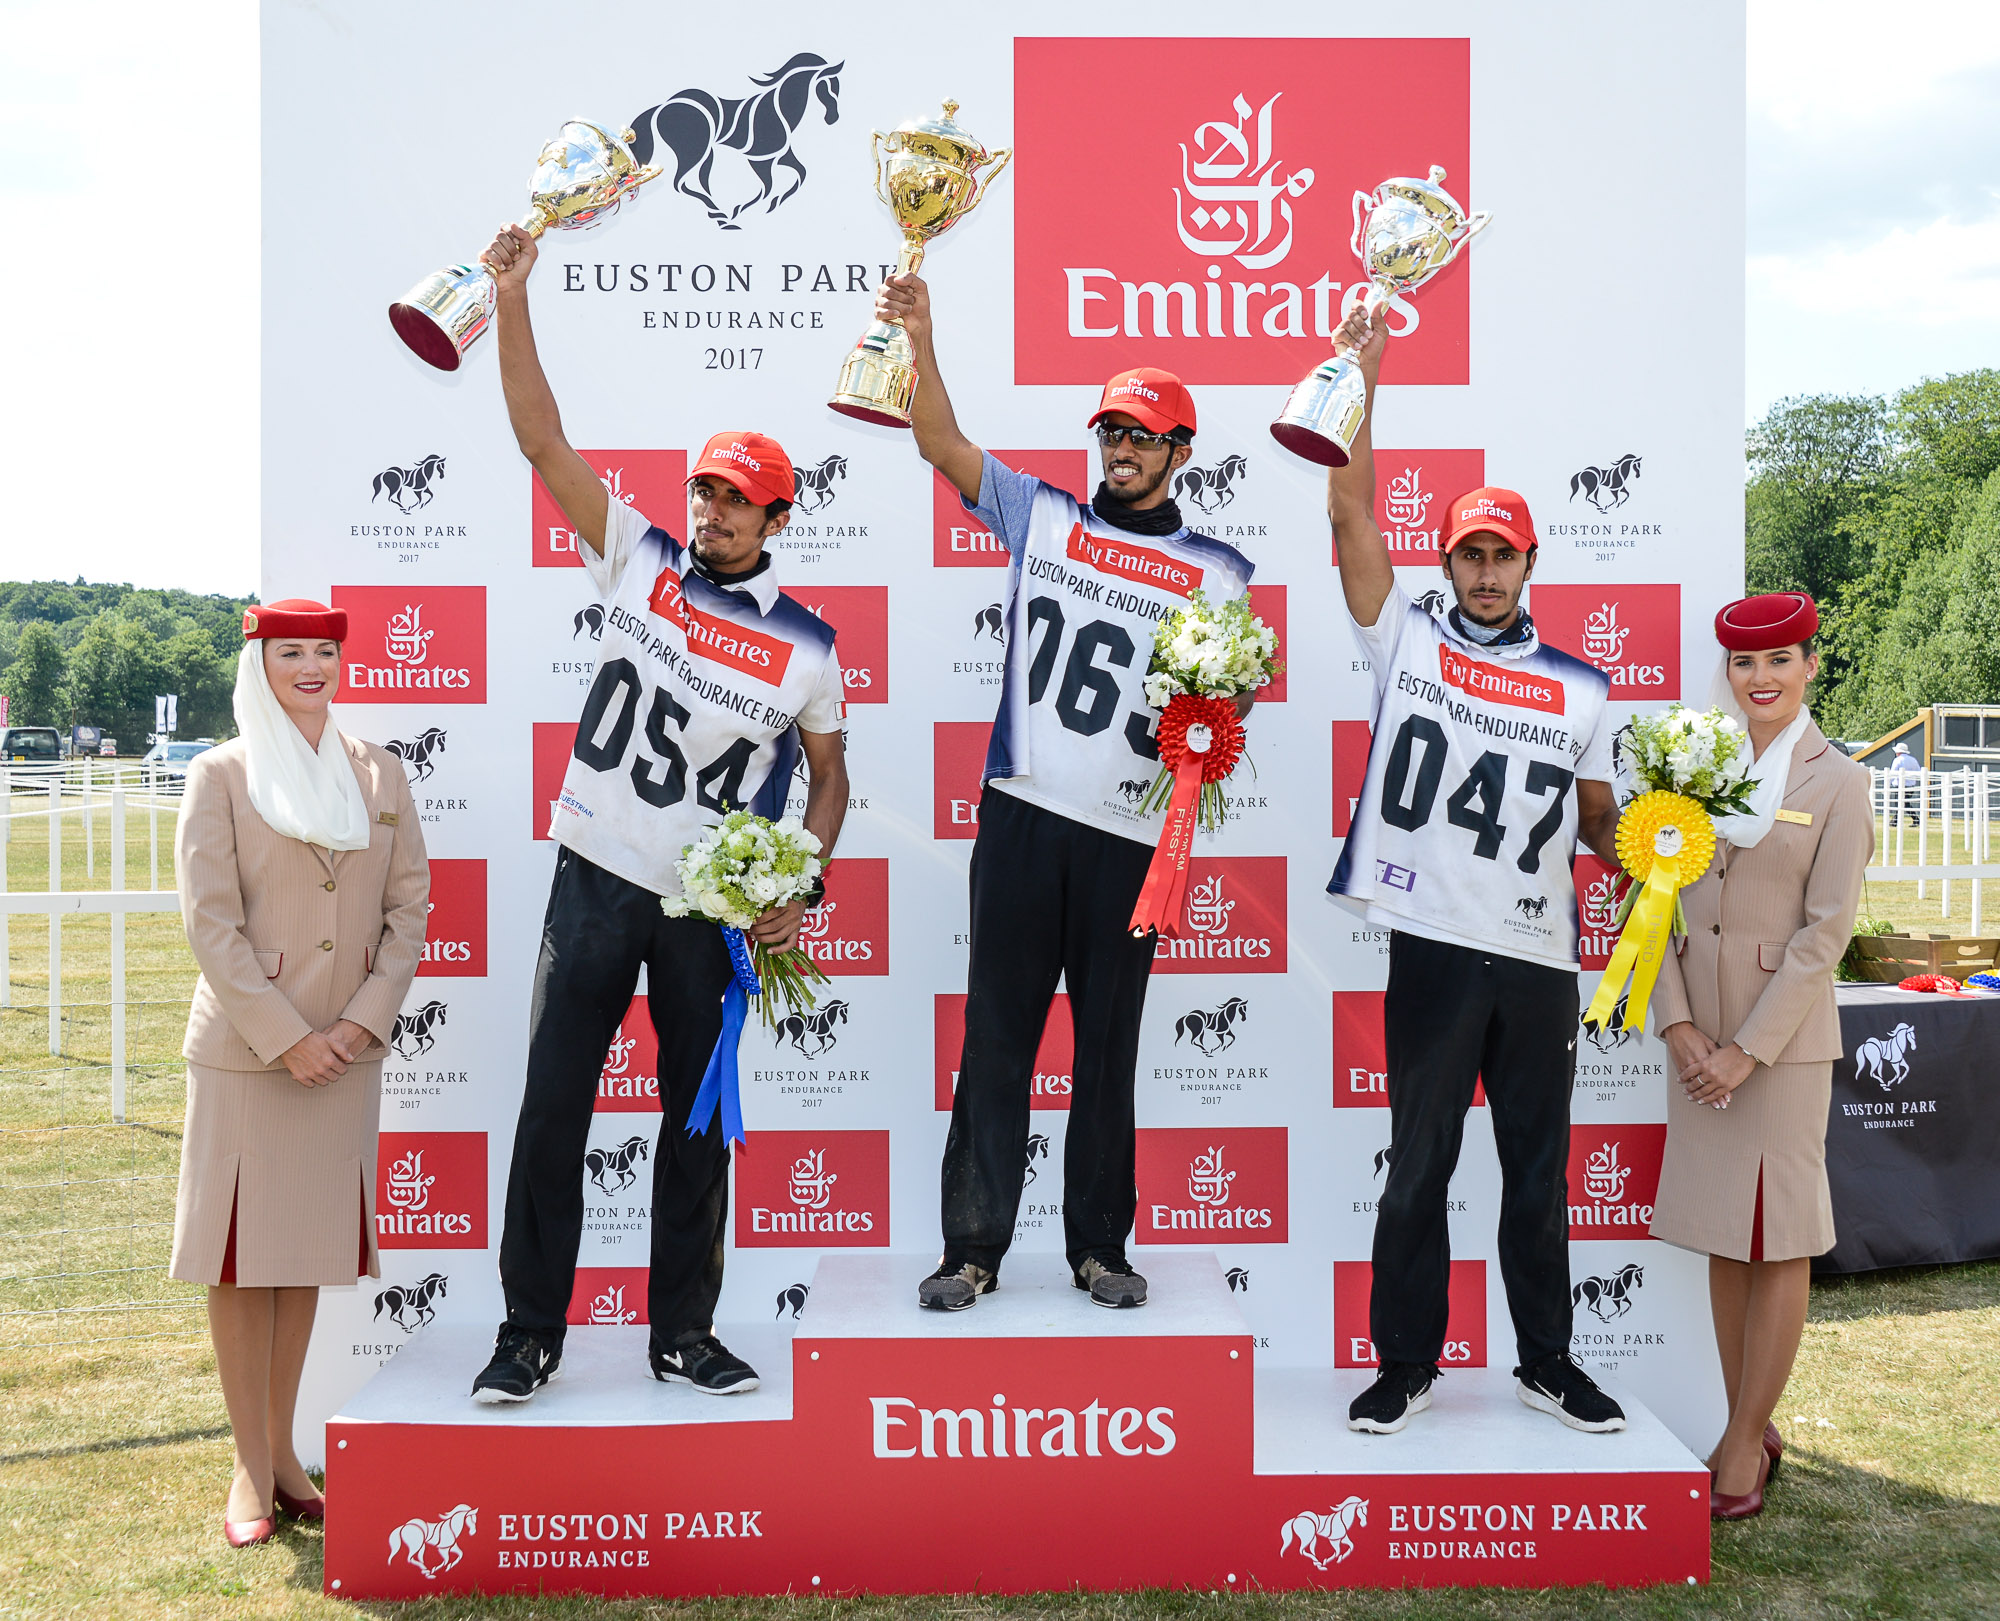 Horse Times Egypt: Equestrian Magazine :News :EUSTON PARK ENDURANCE : UAE WINS ACROSS THE BOARD IN SUFFOLK FEI RIDES